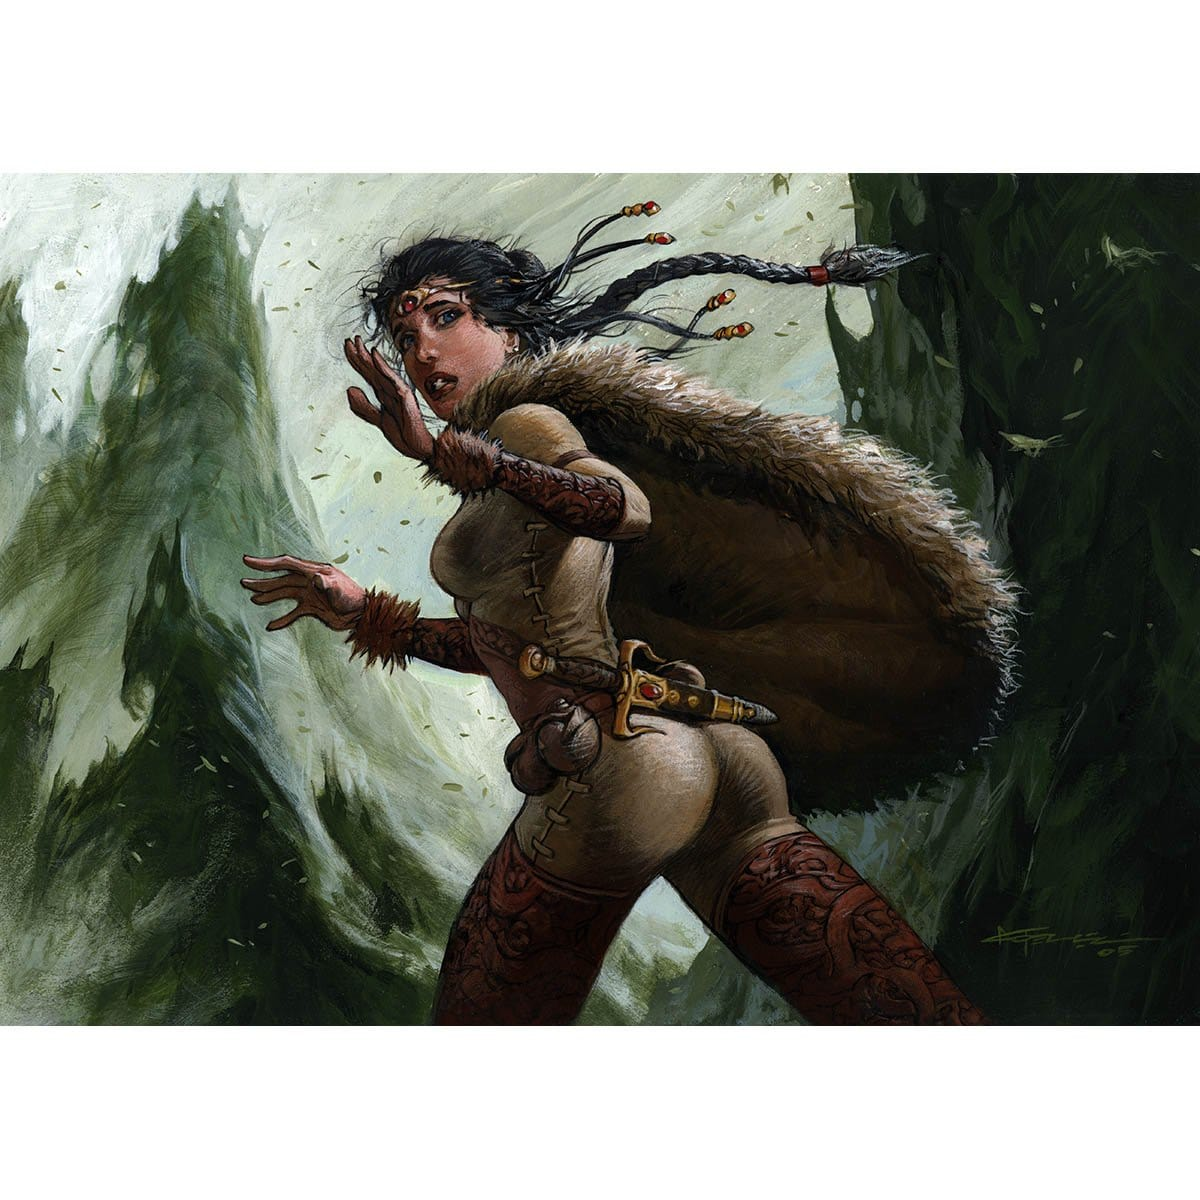 Saffi Eriksdotter Print - Print - Original Magic Art - Accessories for Magic the Gathering and other card games